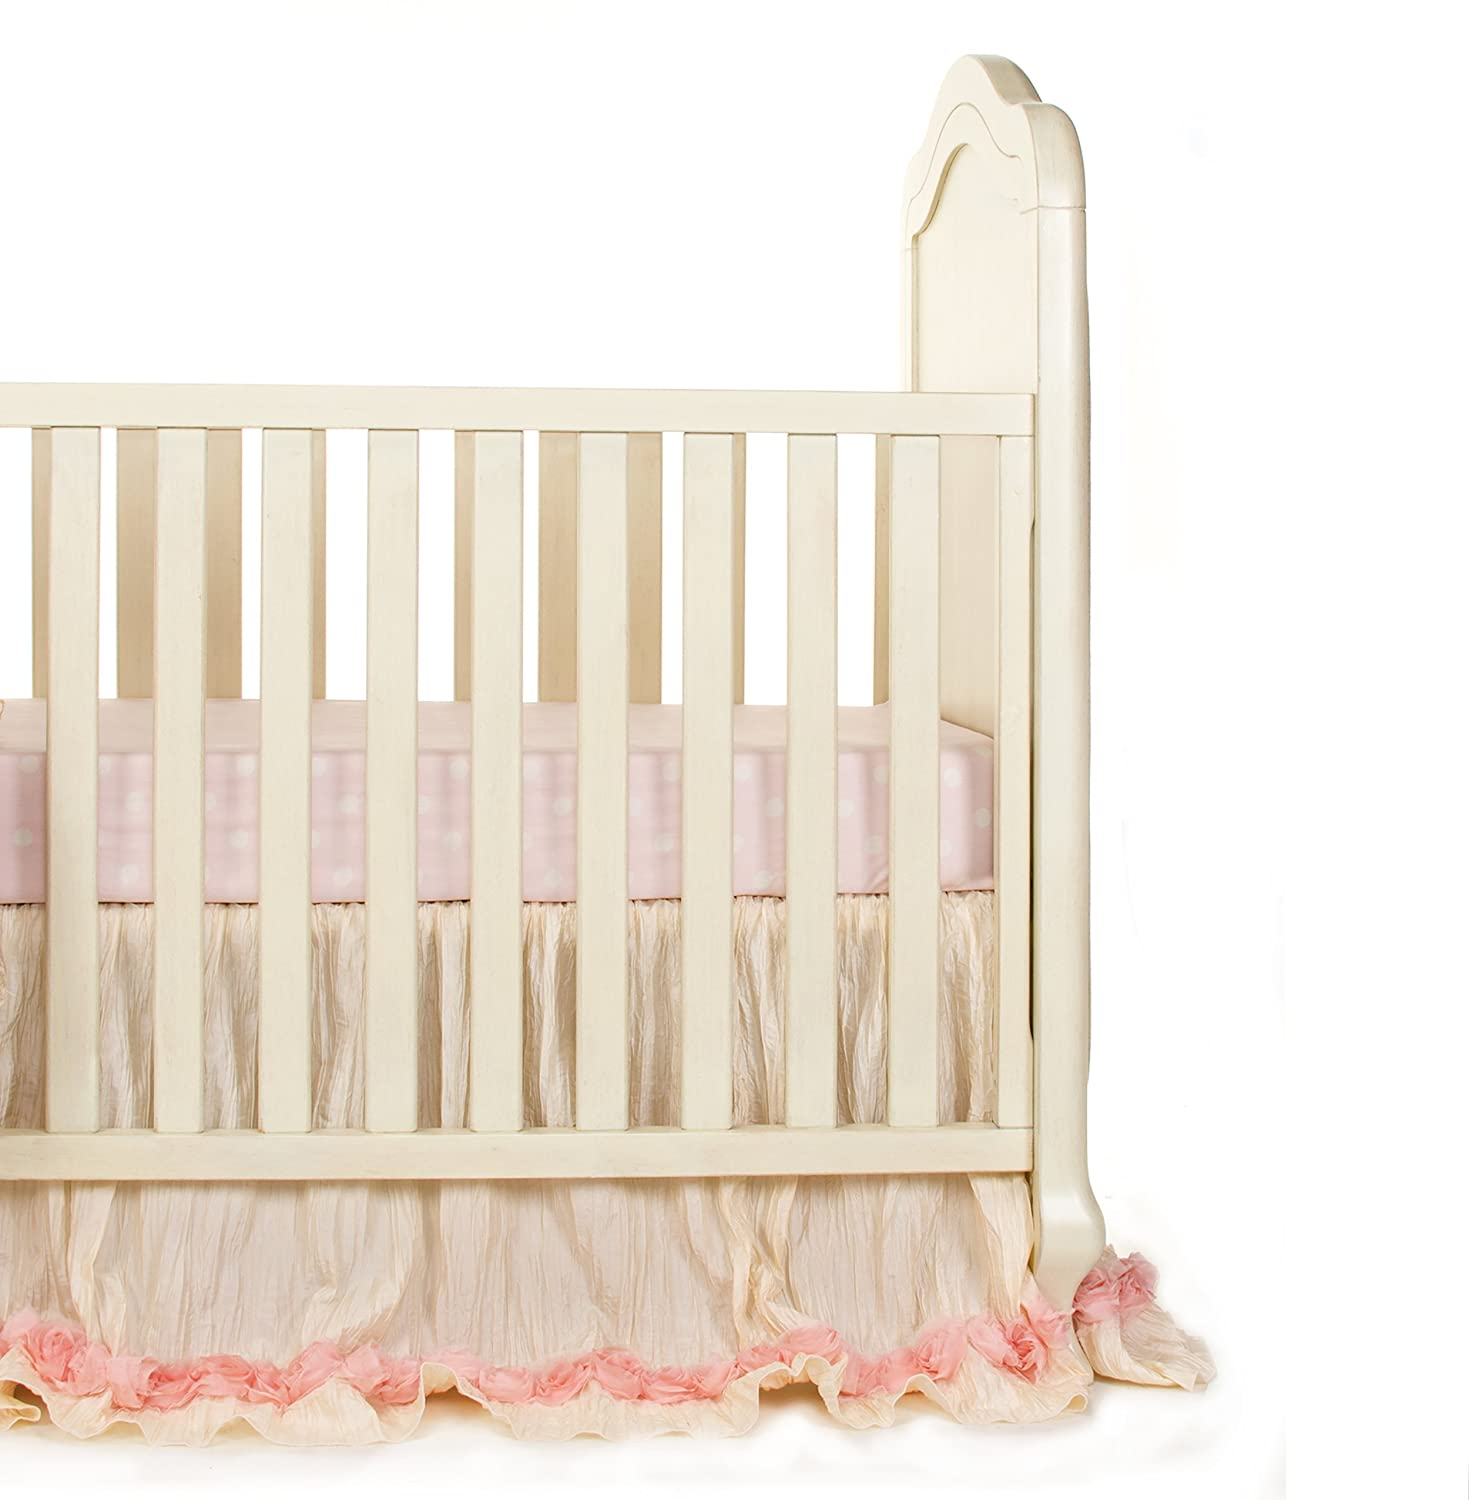 Glenna Jean Victoria Mini Crib2 Piece Bedding Set Includes Dust Ruffle and Fitted Sheet, Pink